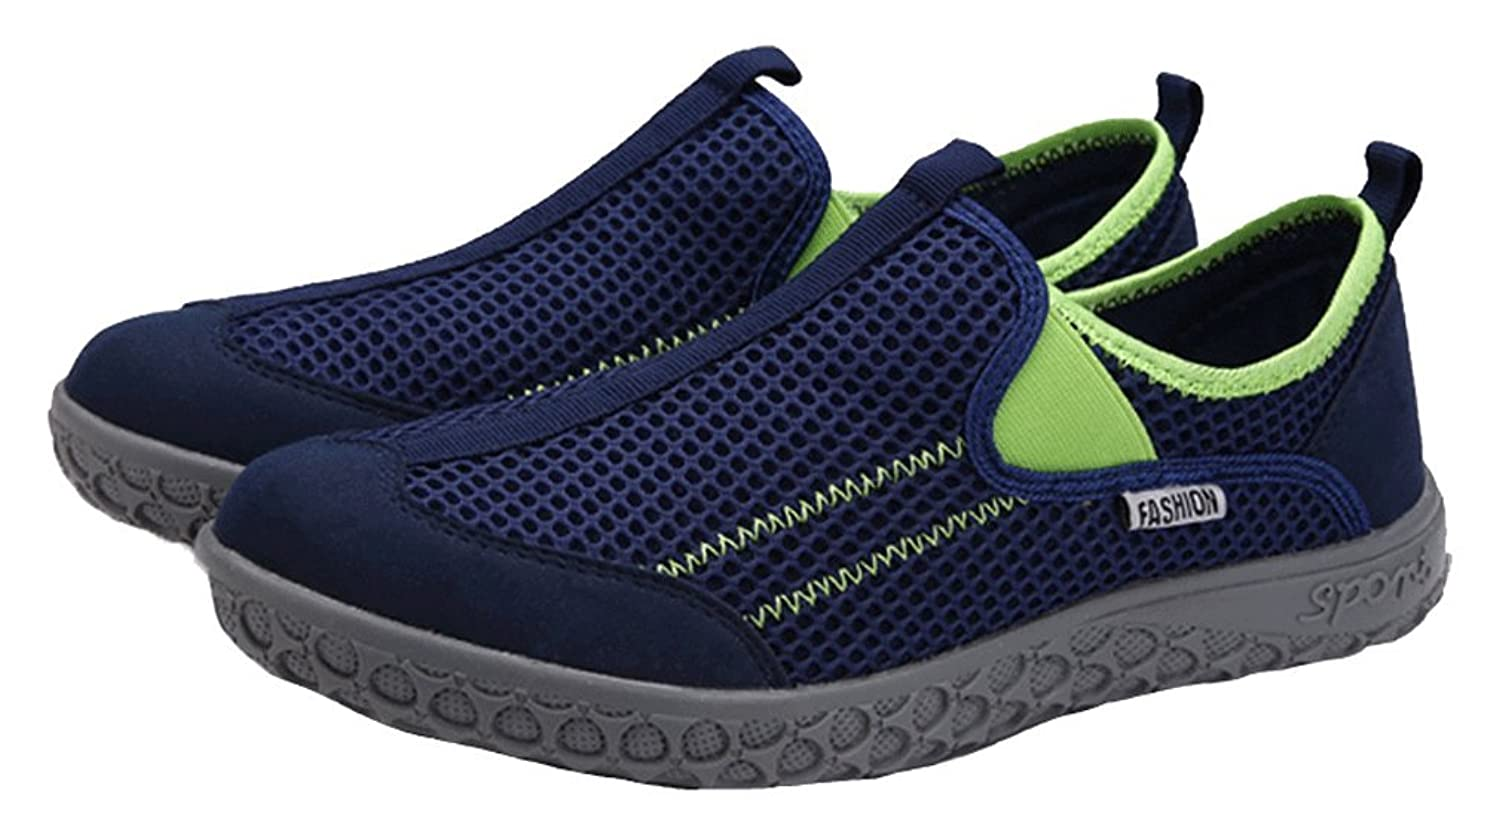 Pointss Girls' and Women's Soft Lovers' Mesh Running Walking Shoes  Breathable Hiking Shoes Leisure Beach Shoes Traveling Shoes: Amazon.ca:  Shoes & Handbags